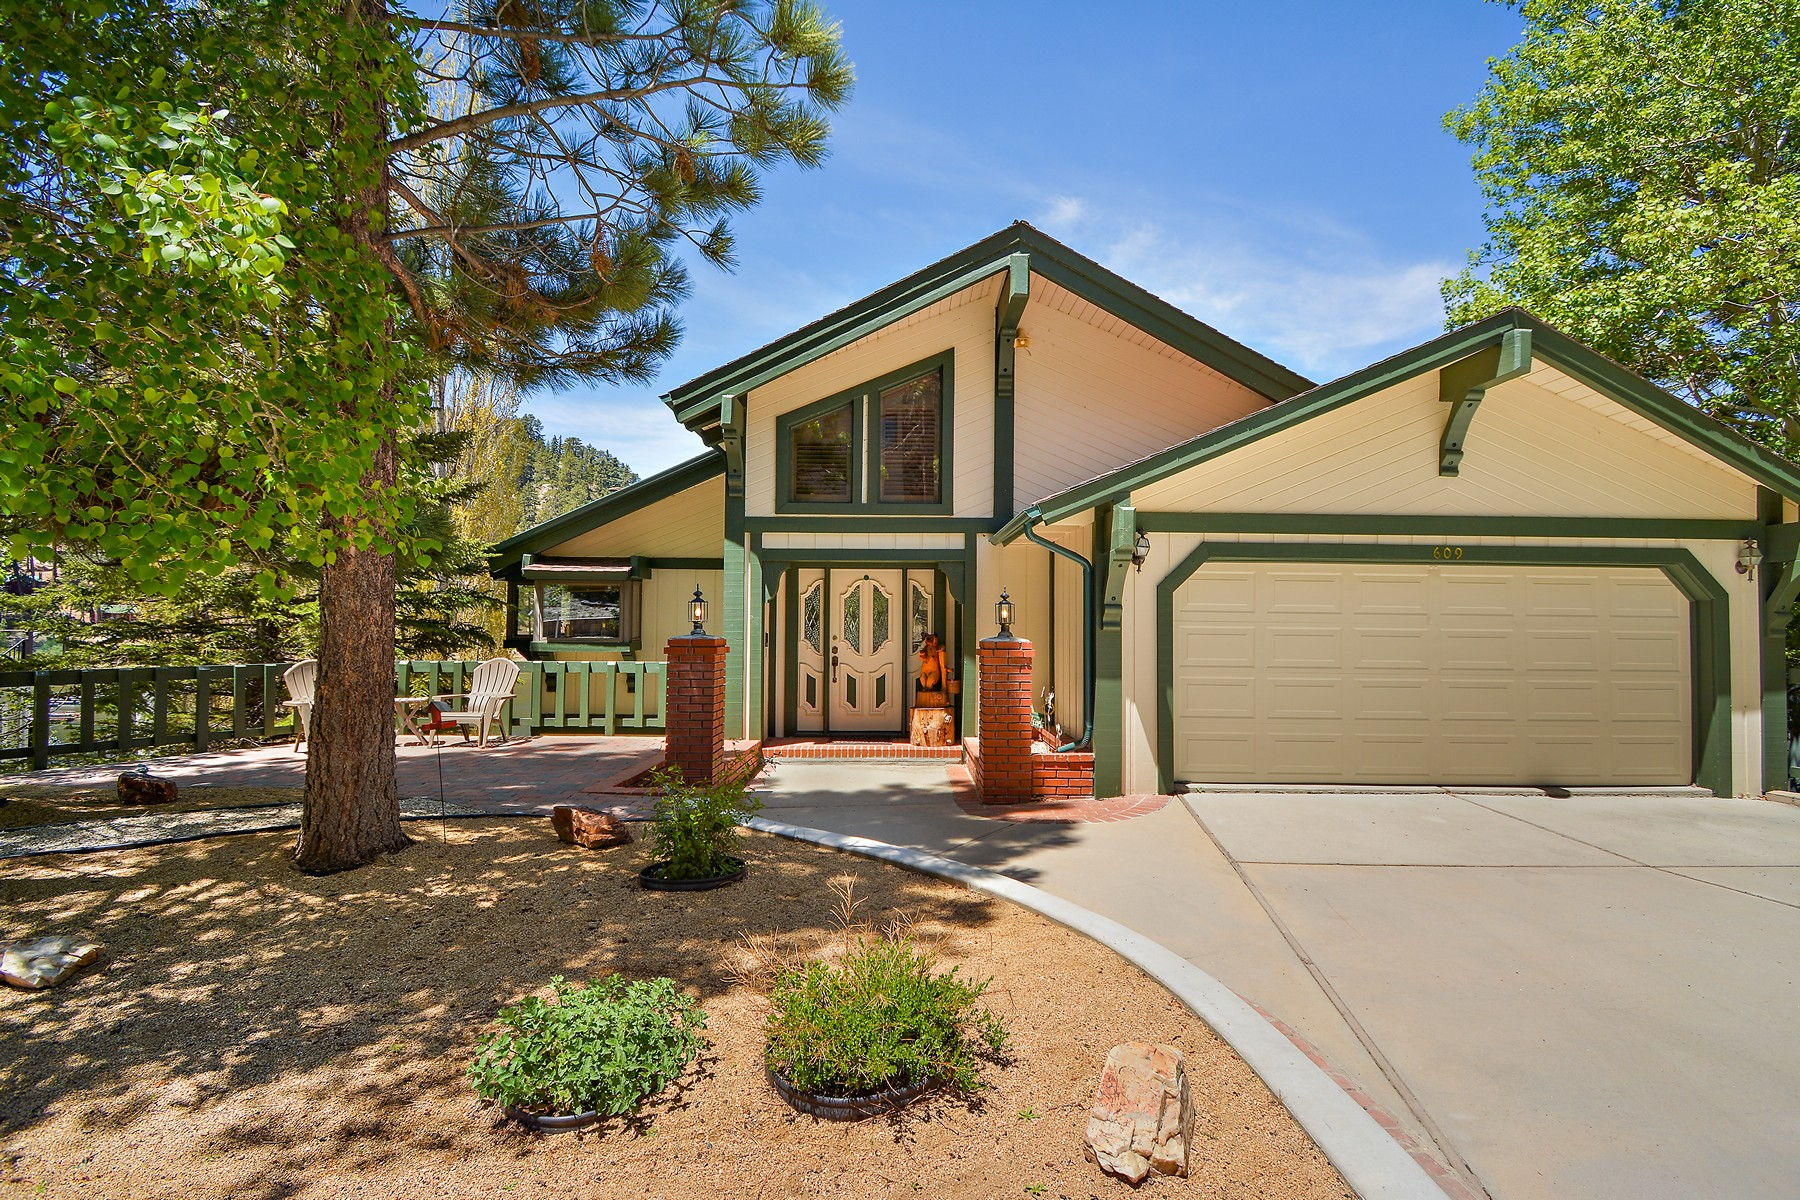 Single Family Homes for Sale at 609 Cove, Big Bear Lake, California, 92315 609 Cove Big Bear Lake, California 92315 United States